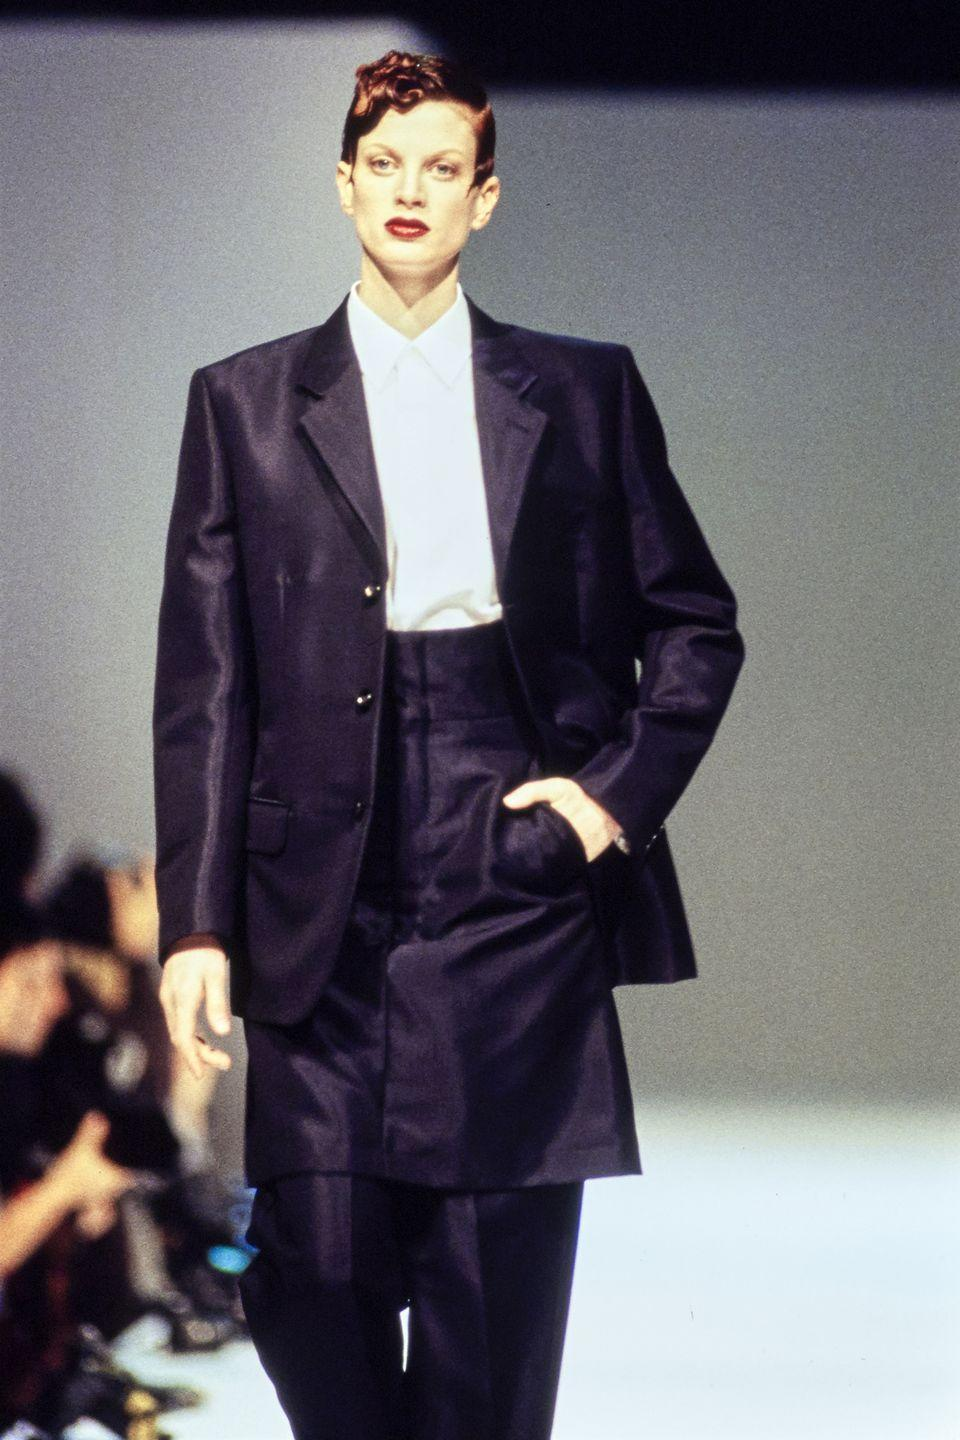 """<p>Cited as an unconventional beauty, McMenamy was nonetheless celebrated for her androgyny. She thankfully didn't heed the advice of model agent Eileen Ford, who encouraged her to <a href=""""https://www.crfashionbook.com/celebrity/a25562079/remember-when-kristen-mcmenamy-eyebrows-birthday/"""" rel=""""nofollow noopener"""" target=""""_blank"""" data-ylk=""""slk:get plastic surgery"""" class=""""link rapid-noclick-resp"""">get plastic surgery</a>. From labels like Chanel, Versace, and Comme des Garçons to photographers like Steven Meisel and Juergen Teller, the fashion industry embraced the Pennsylvania native's uniqueness. </p>"""